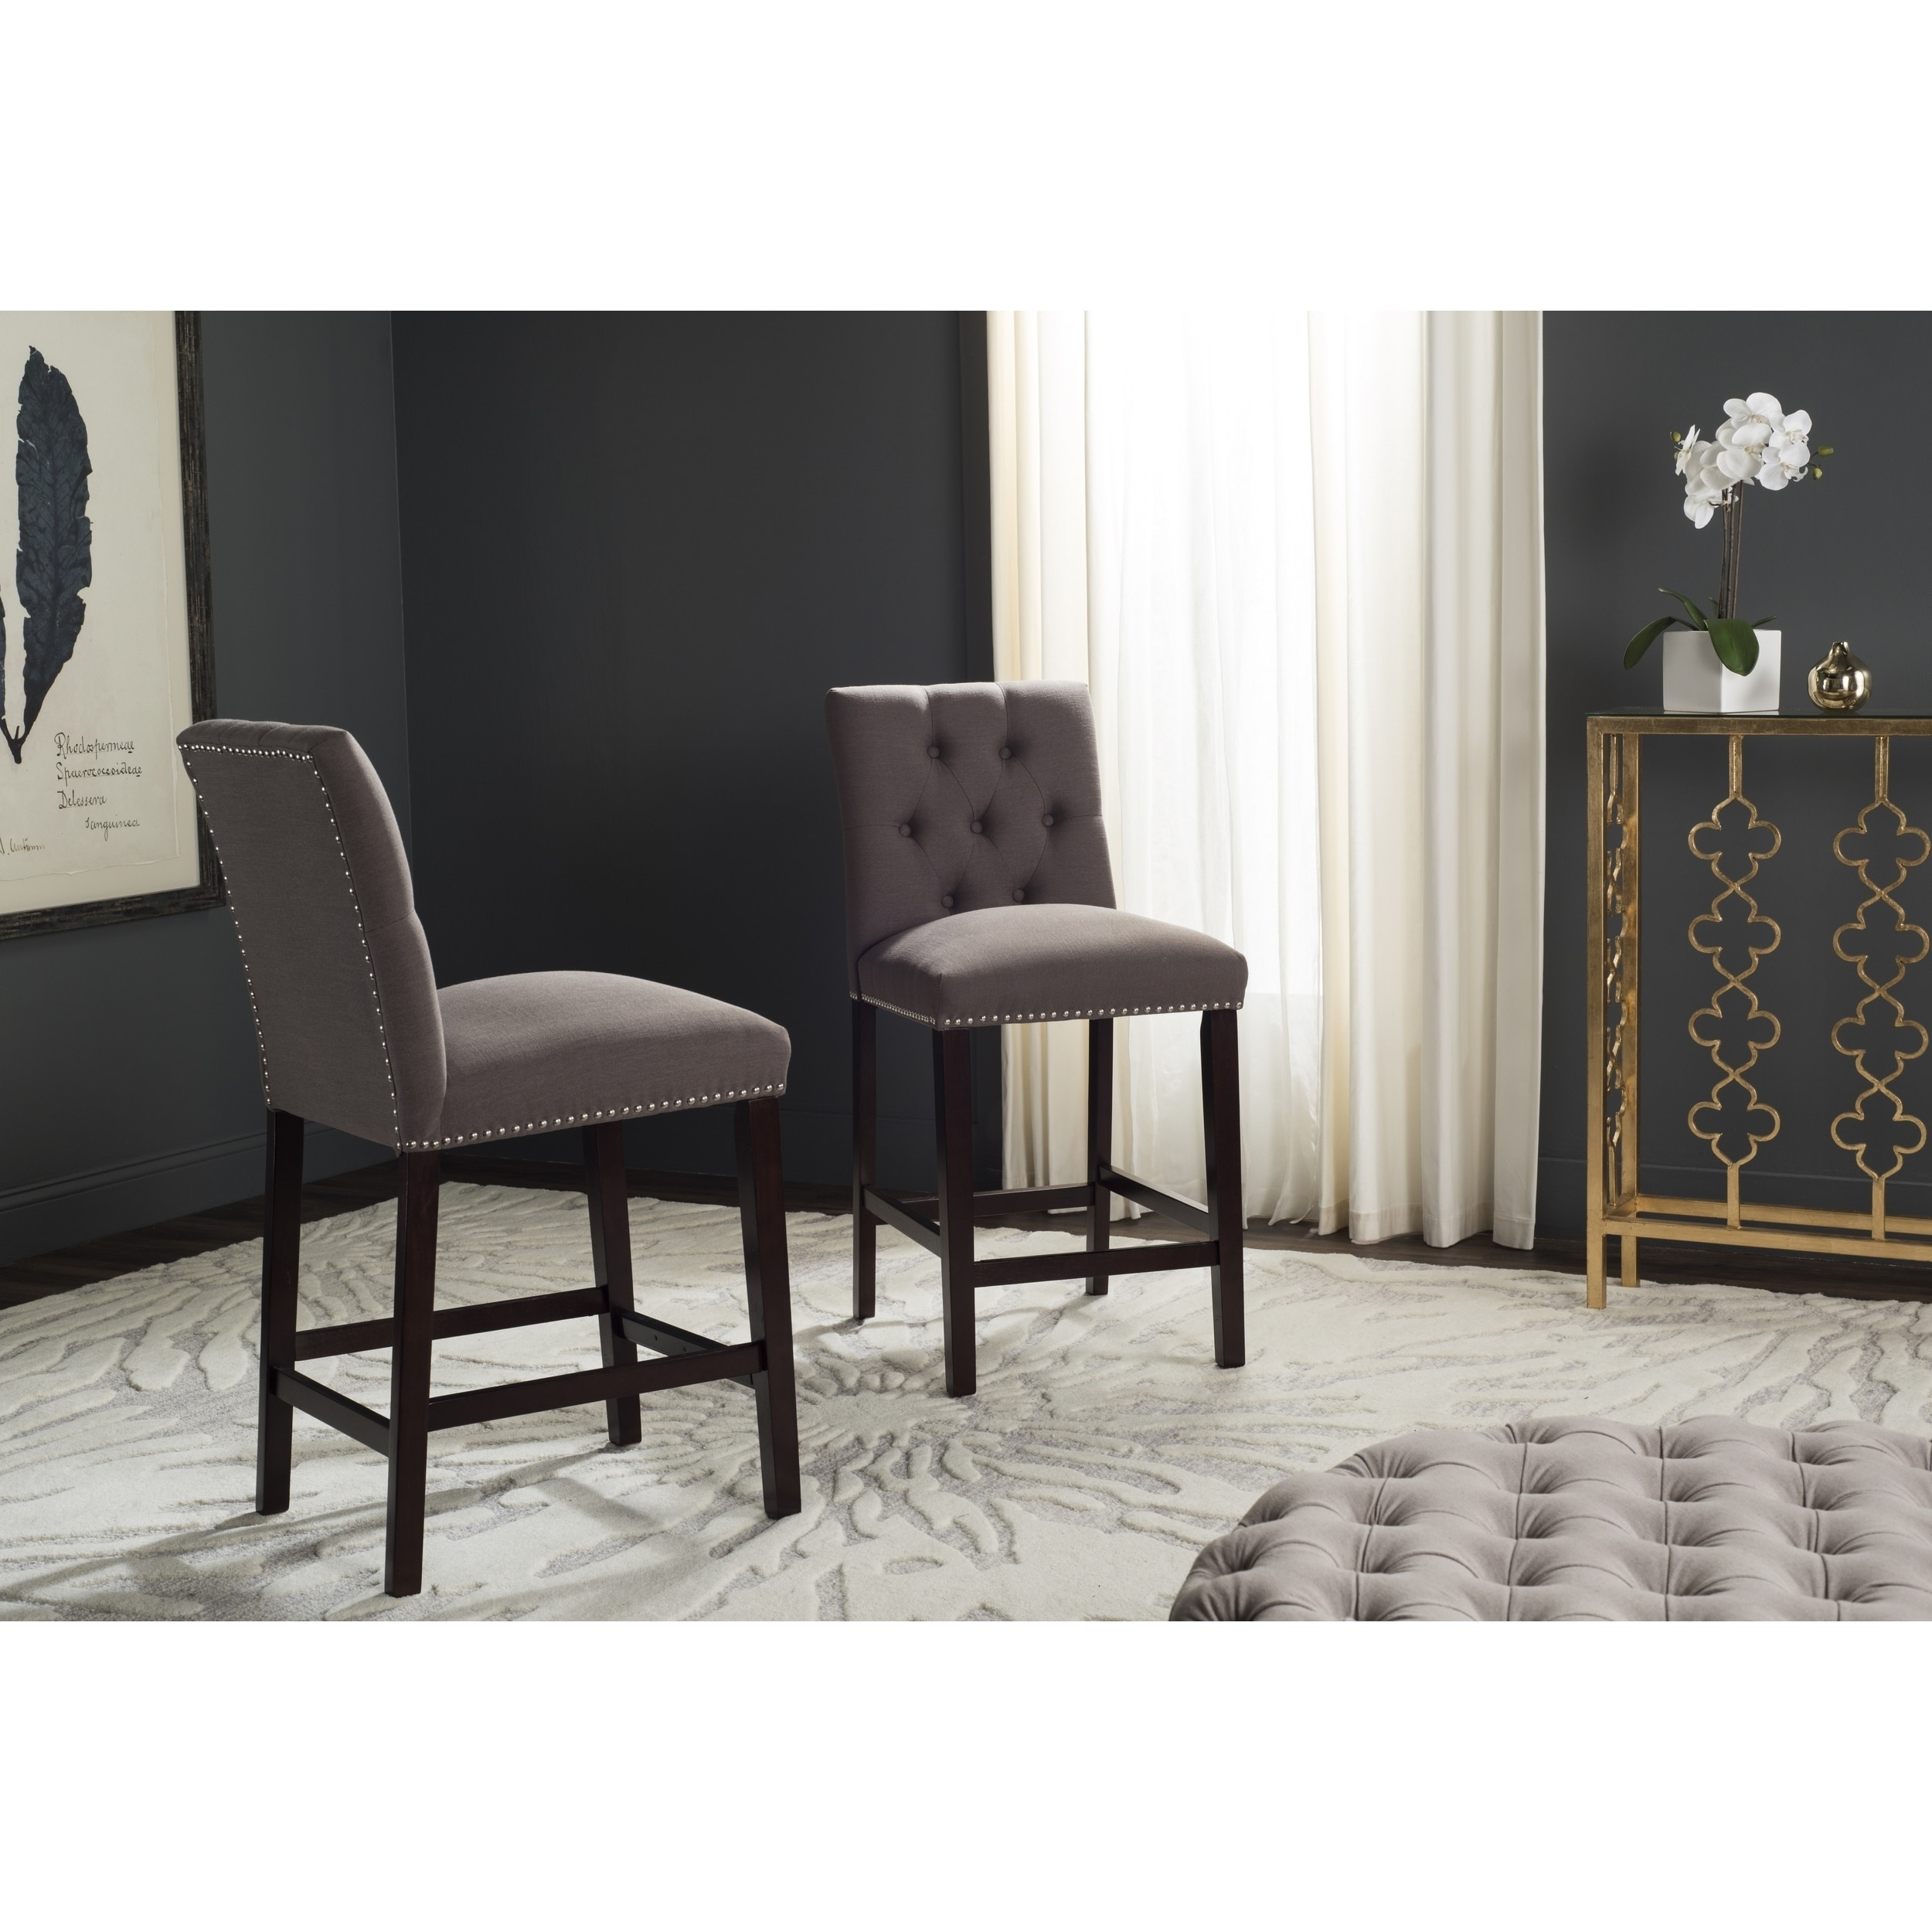 Safavieh Norah Dark Taupe Counter Stool (Set of 2) - Free Shipping Today -  Overstock.com - 18358331